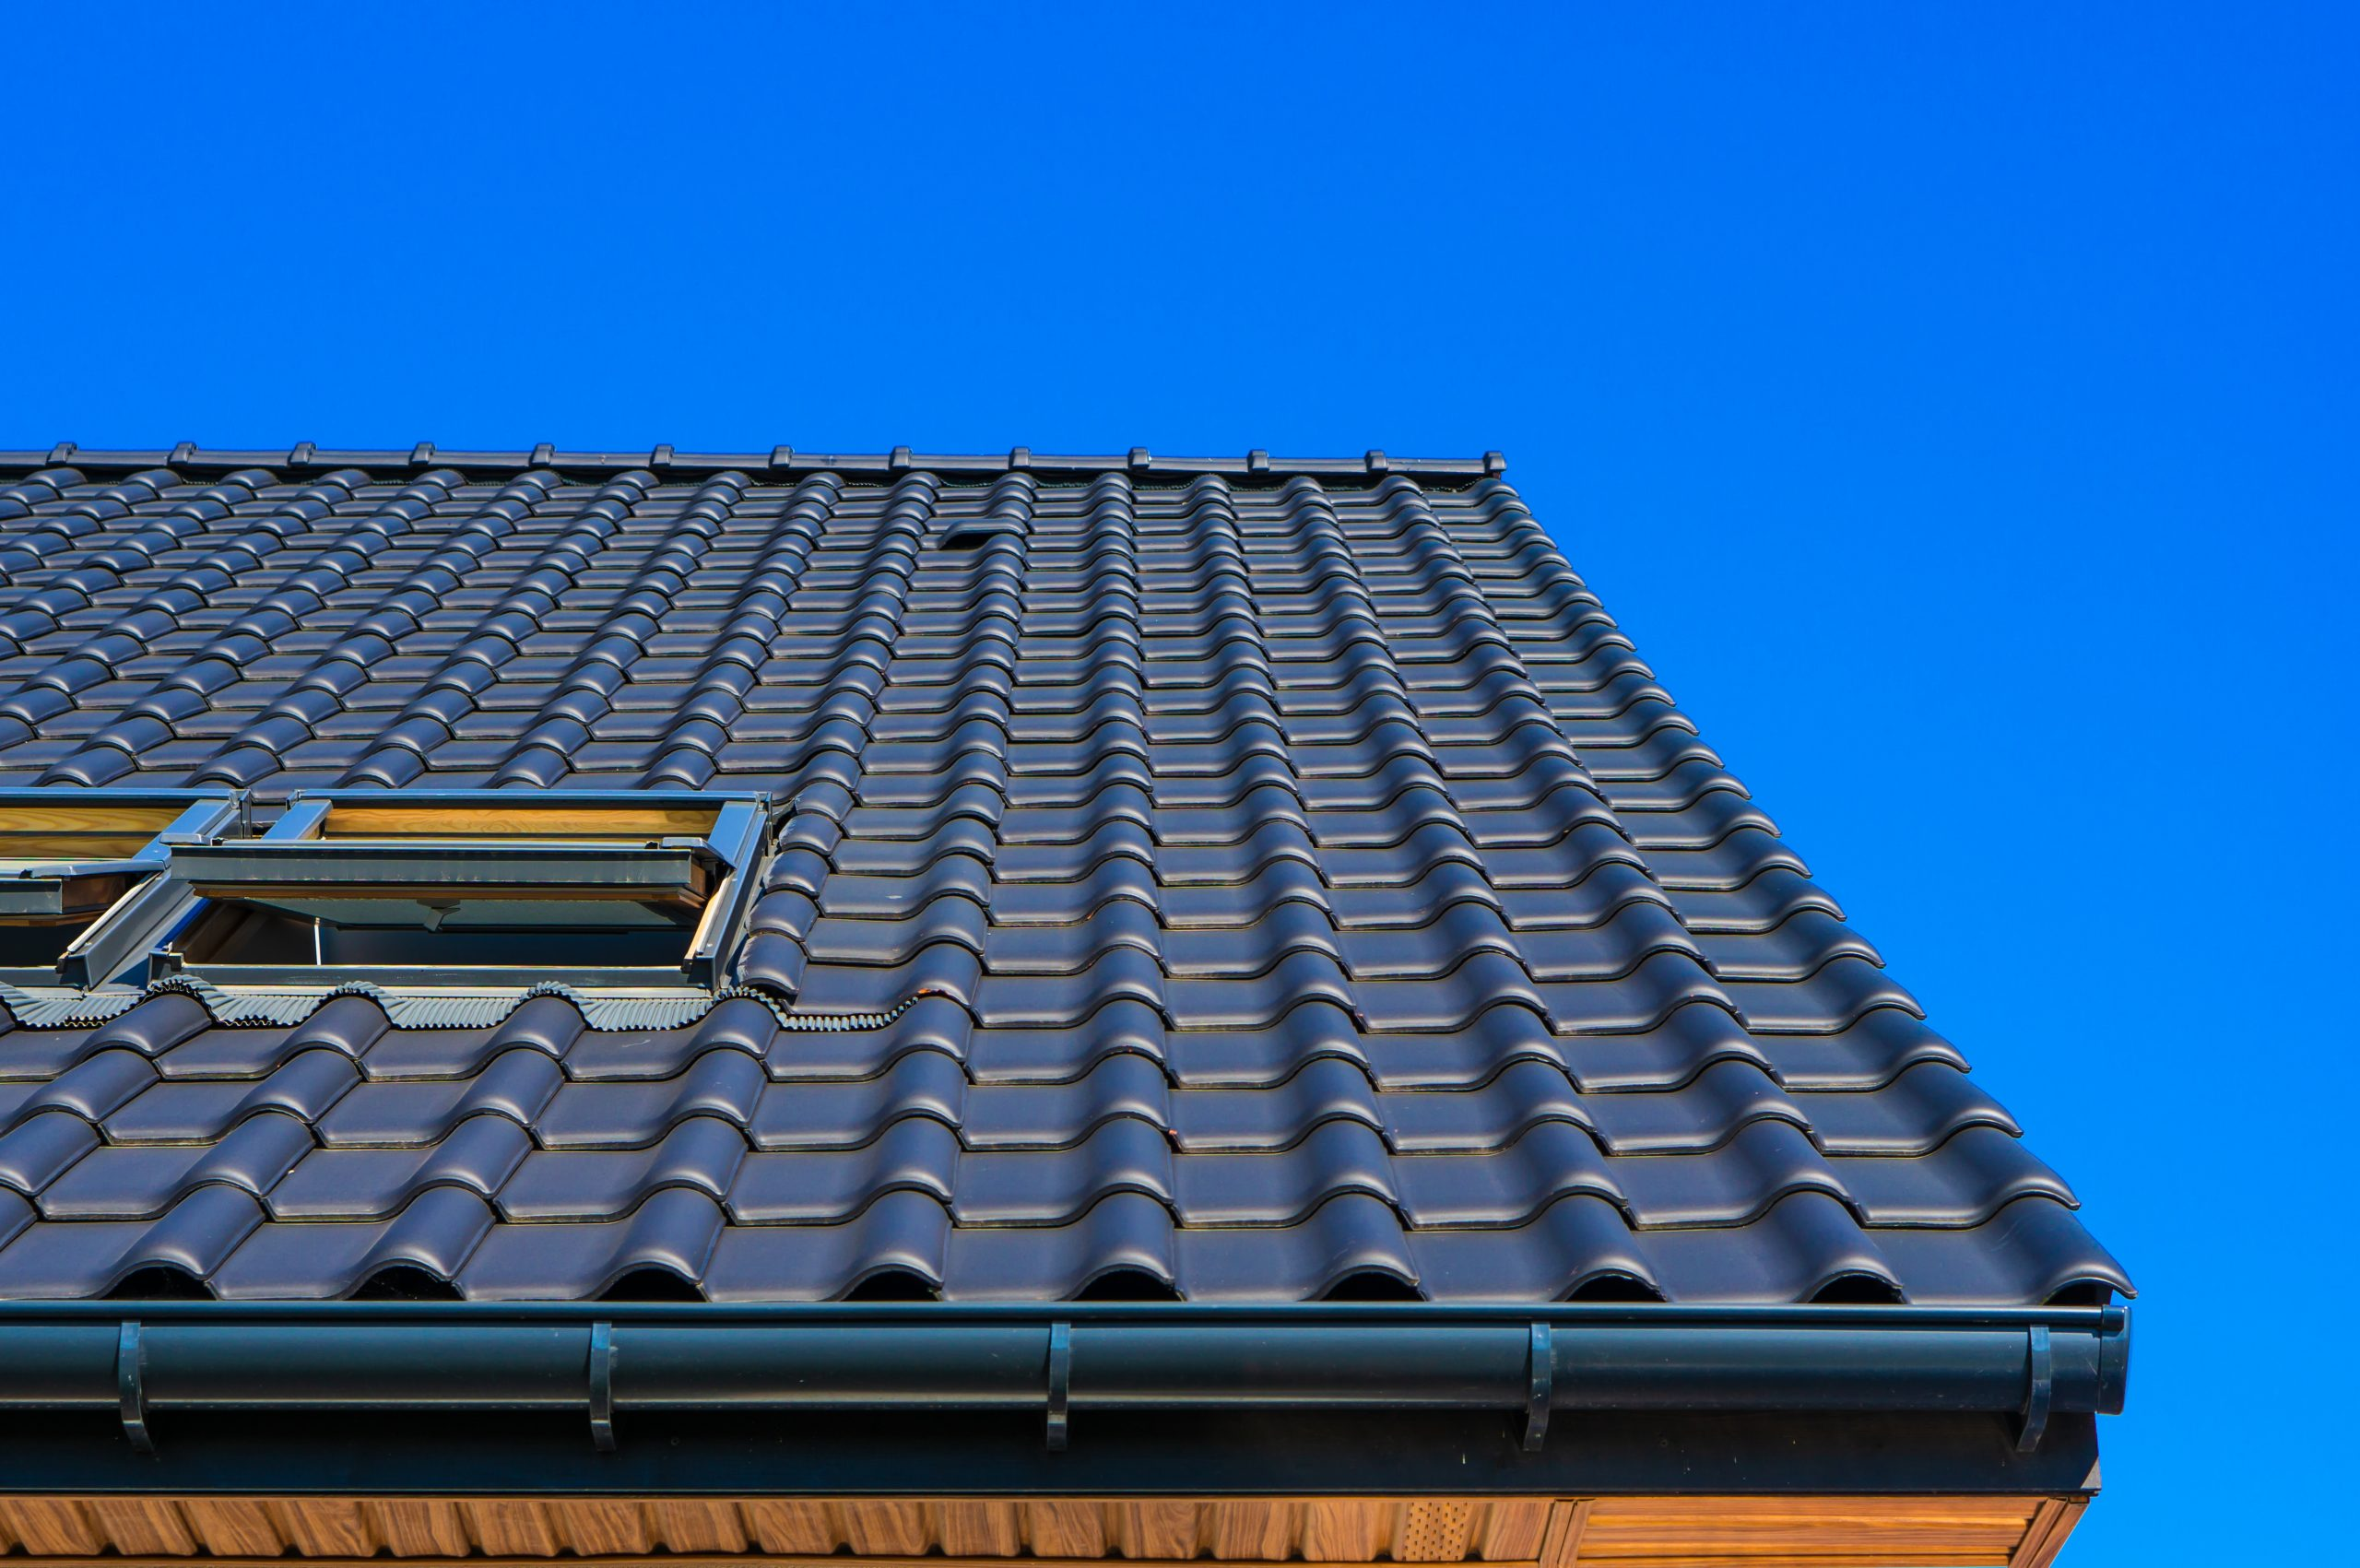 A vertical low angle closeup shot of the black roof of a building with a blue background